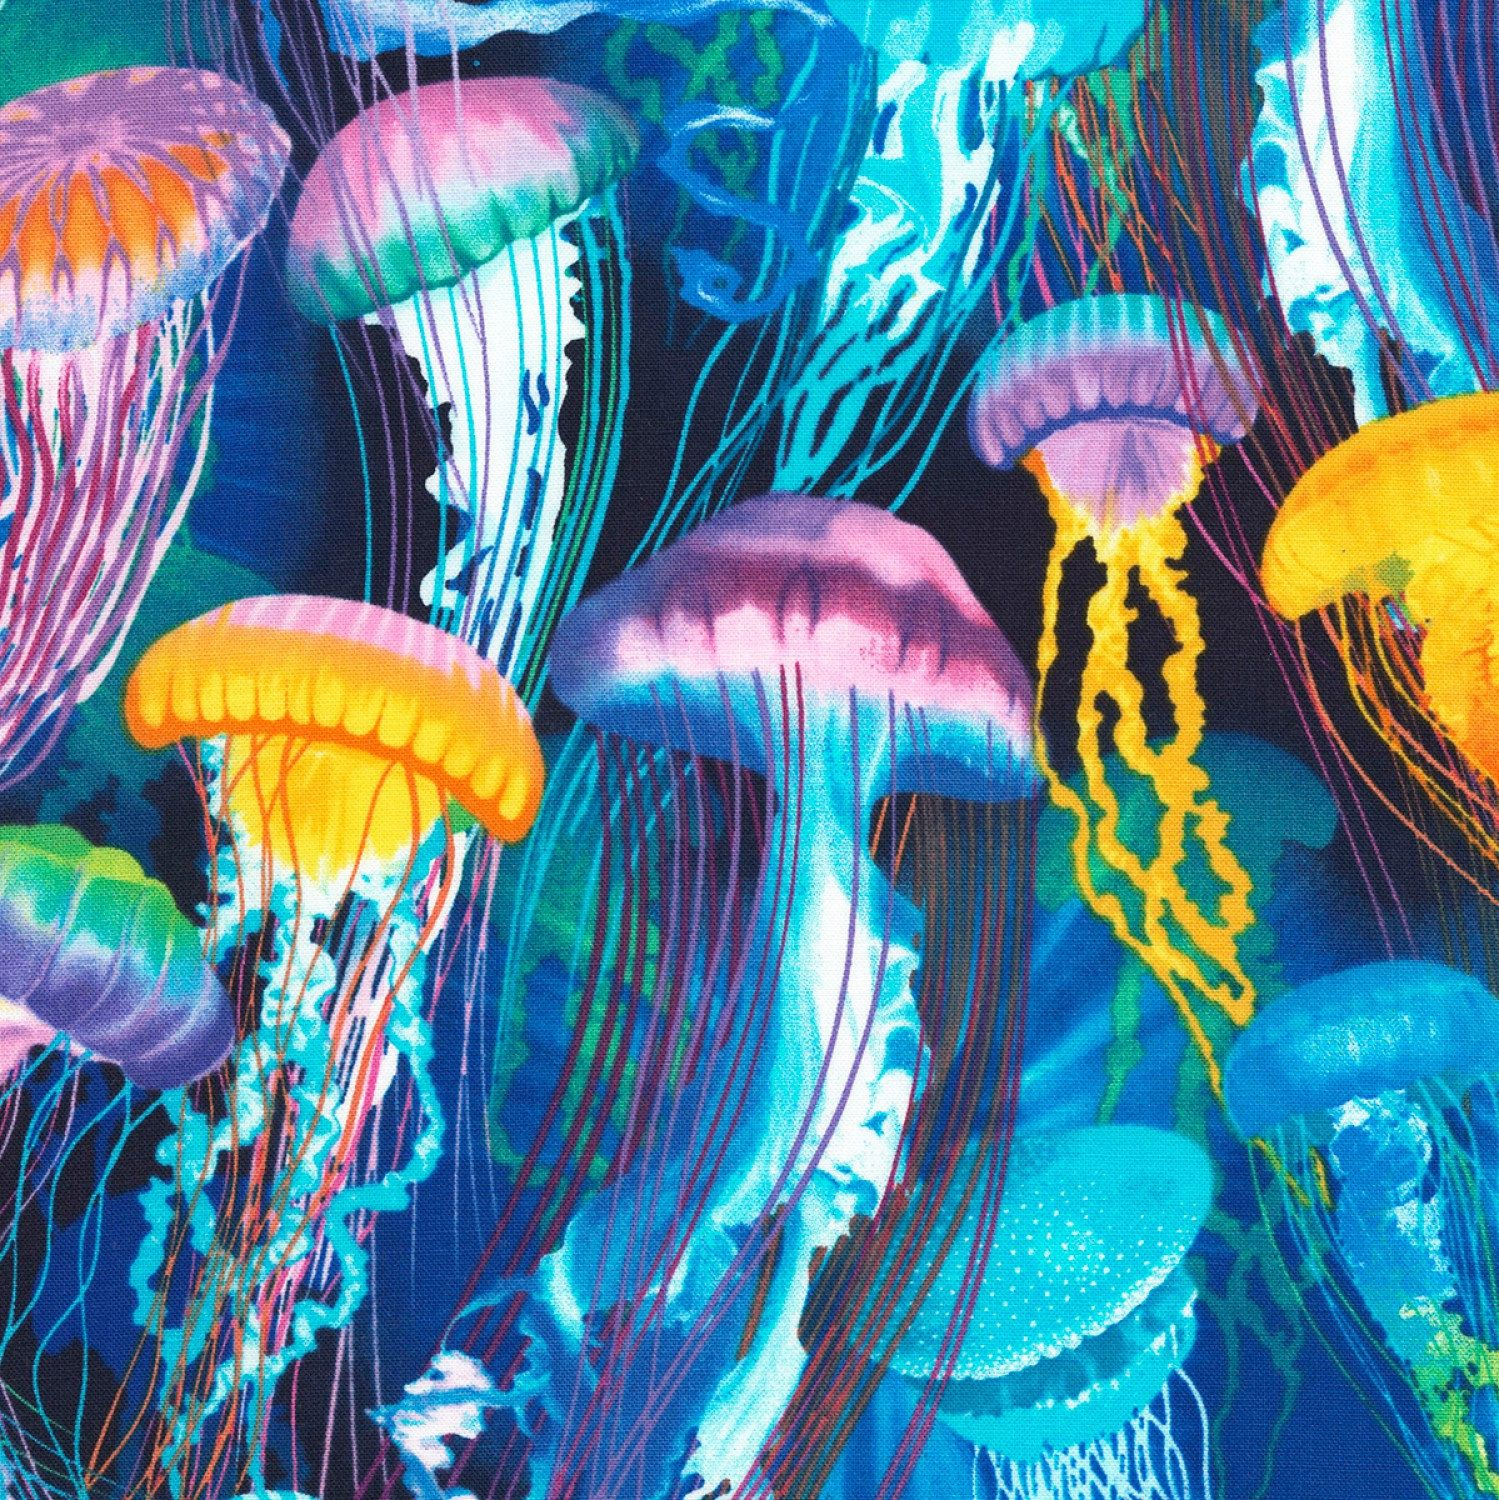 Jellyfish Colorful Underwater Jellyfish in the Ocean Cotton Fabric by the Yard